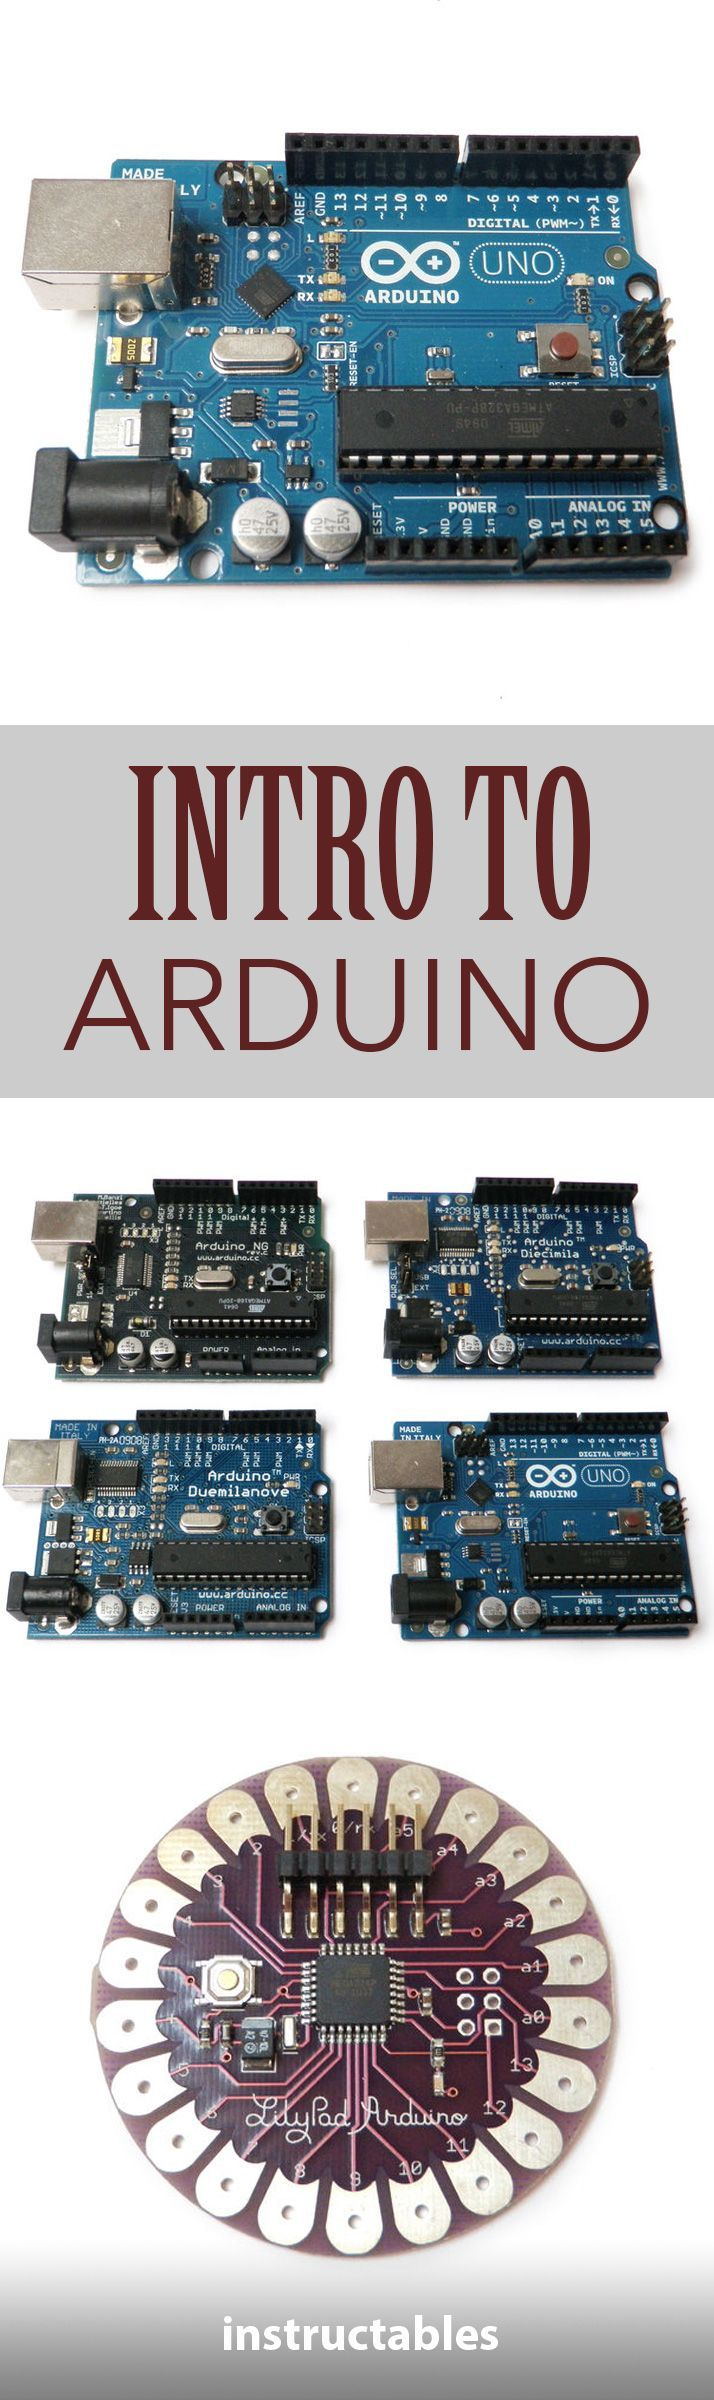 23 Best Arduino Images On Pinterest Electronics Projects Christmas Tree Lighting Circuit Diagram Gadgetronicx Beginner Guide To Using How Get Started Arduinobeginner